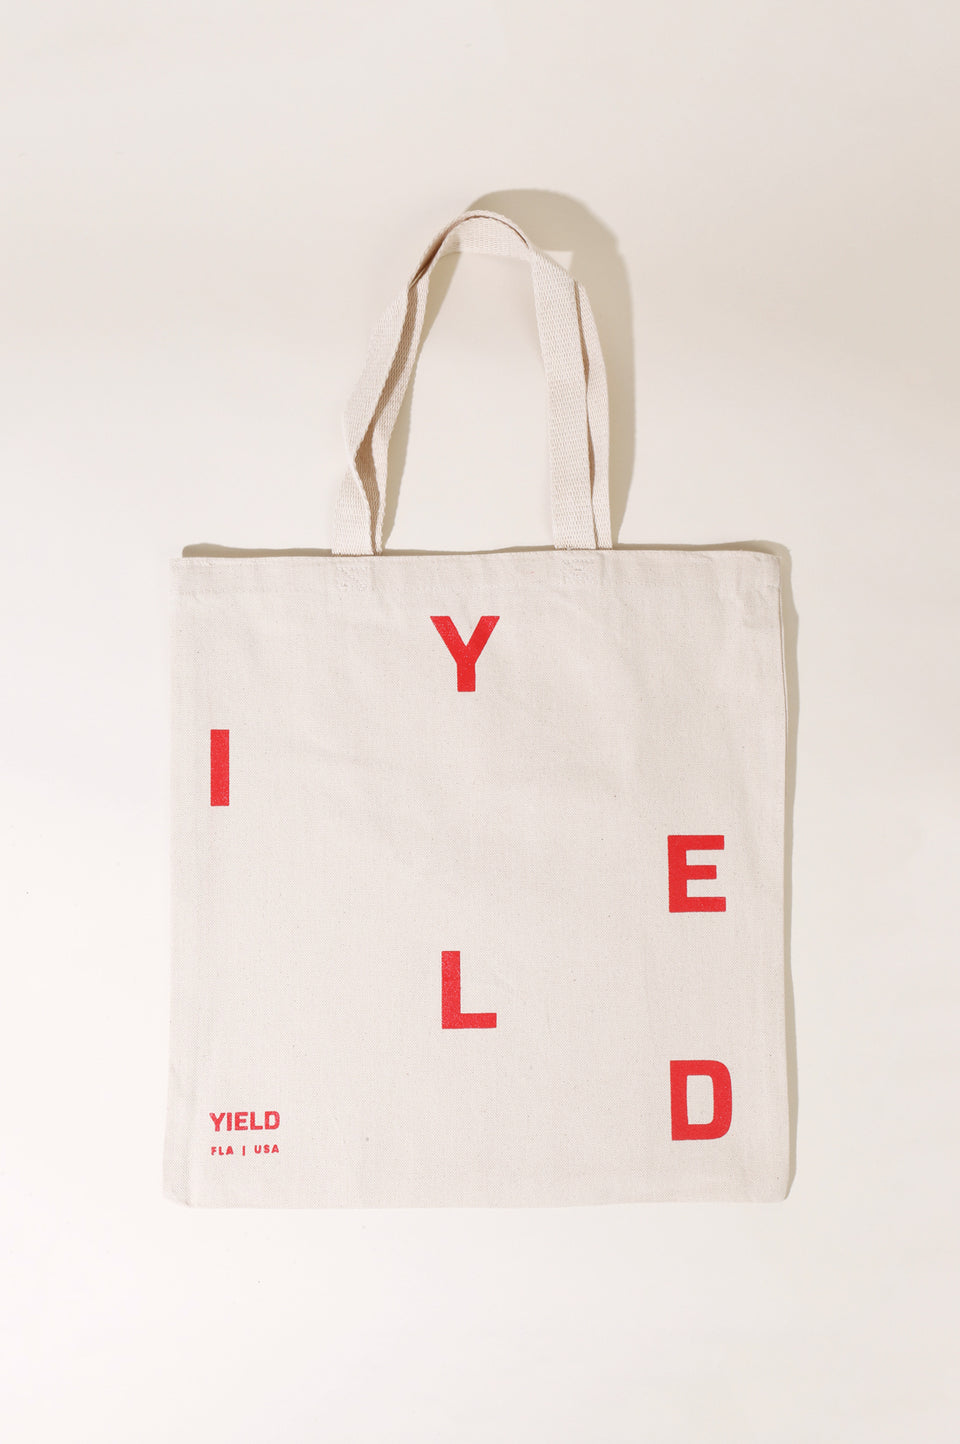 YIELD Tote